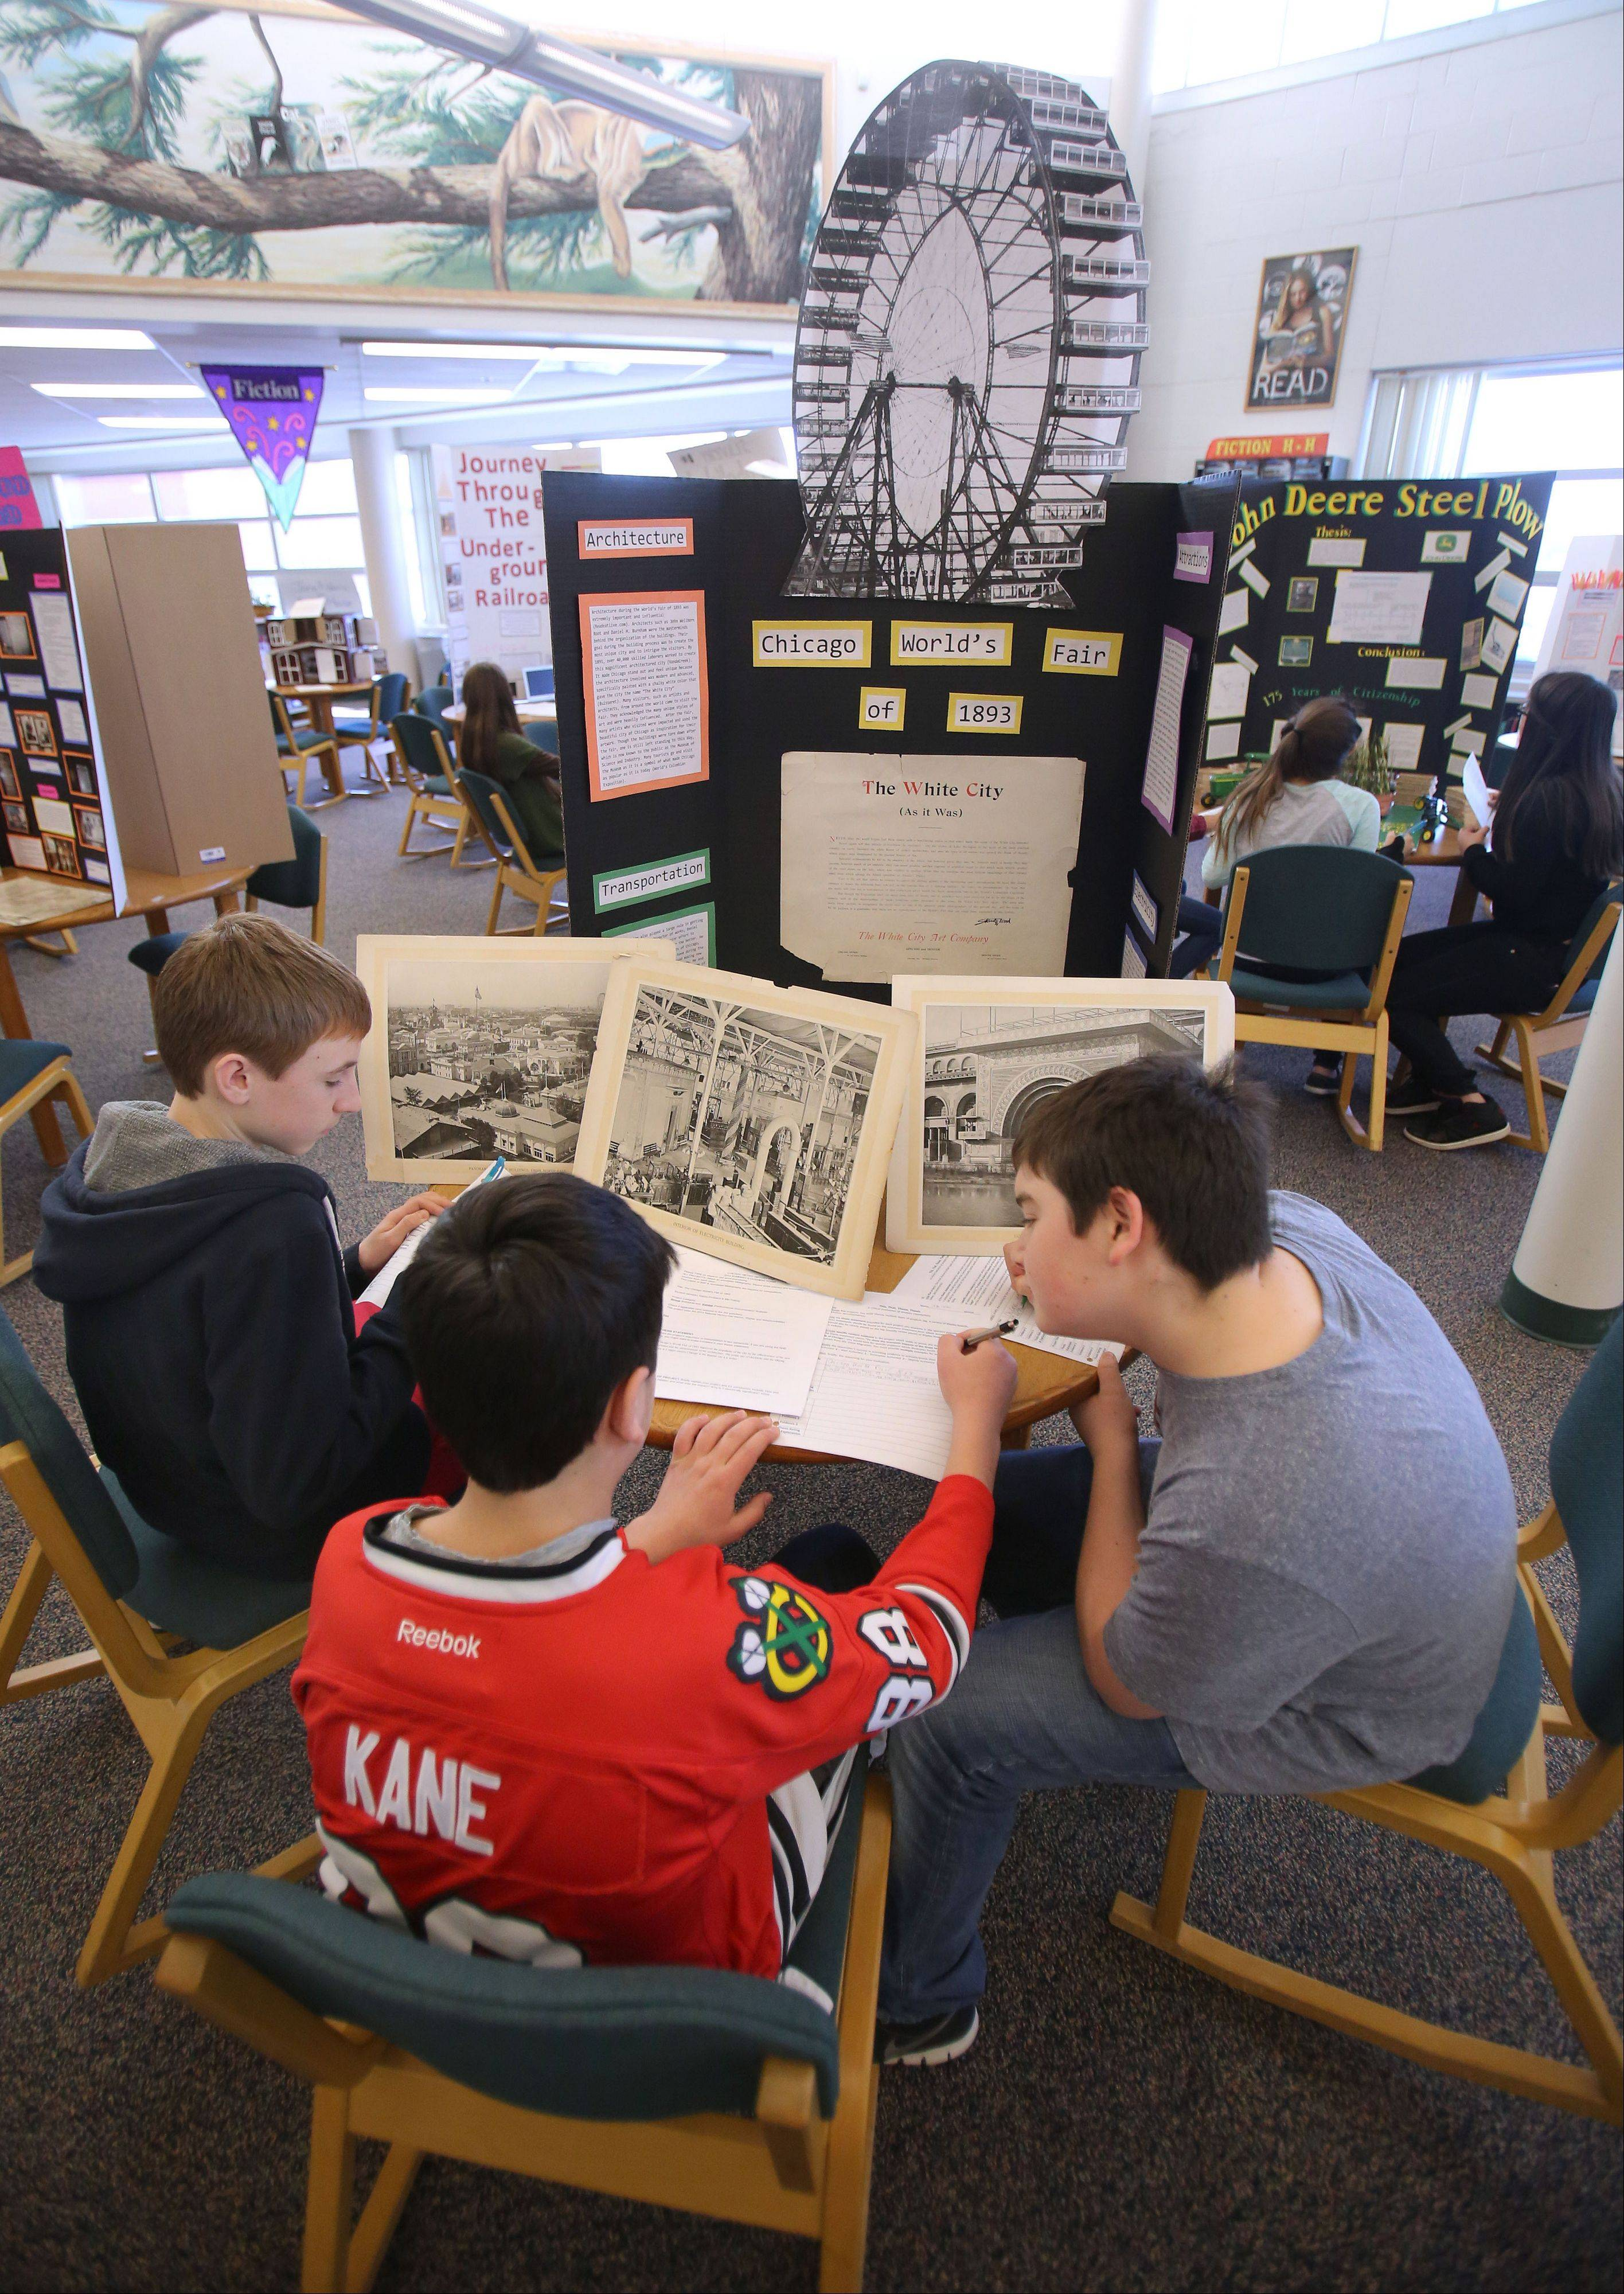 Freshman Tom Zayats, left, Jacob Gordon and Ryan Ginsberg study a display covering the Chicago World's Fair during a history fair in the Vernon Hills High School library Thursday. The fair featured traditional cardboard displays, as well as websites and video documentaries.